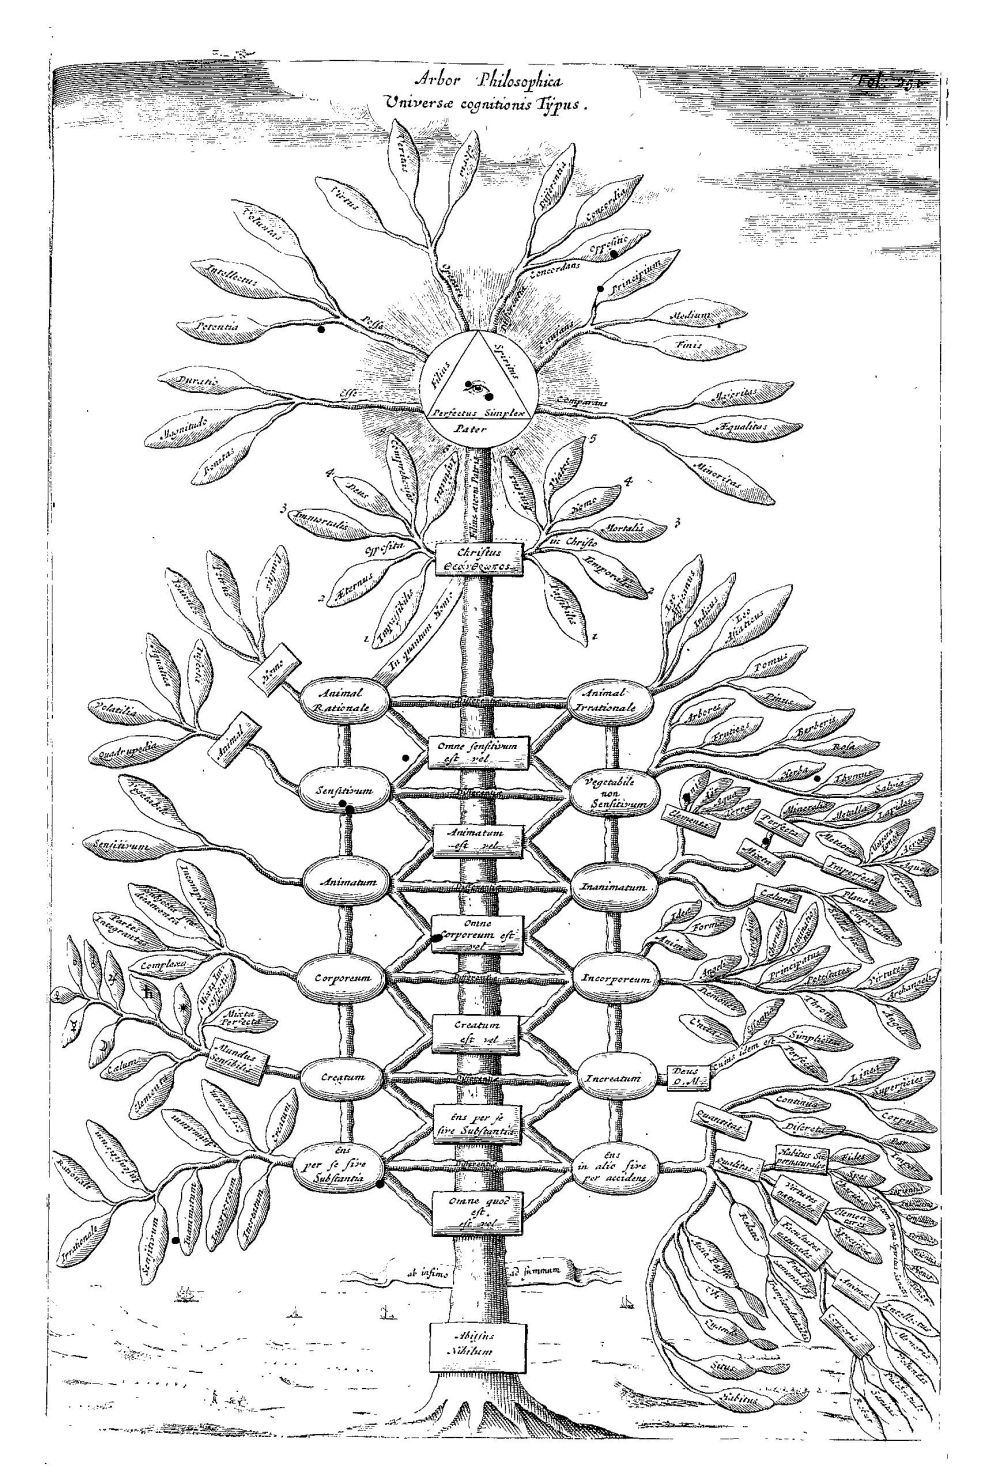 medium resolution of kircher s philosophical tree representing all branches of knowledge from ars magna sciendi 1669